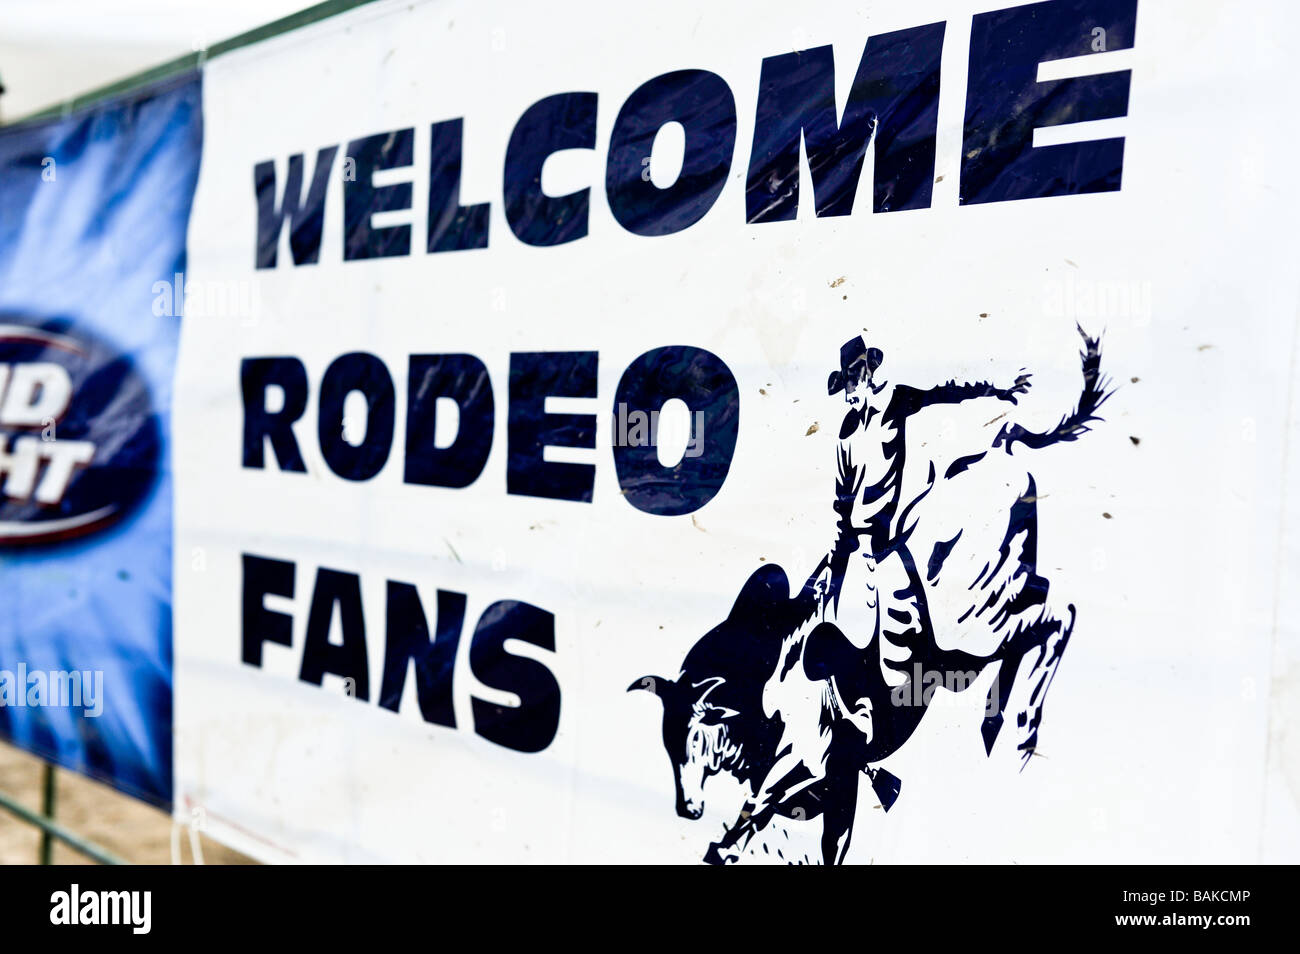 Welcome Rode Fans sign greeting attendees at the Windy City Rodeo a gay rodeo held annually near Chicago Illinois - Stock Image